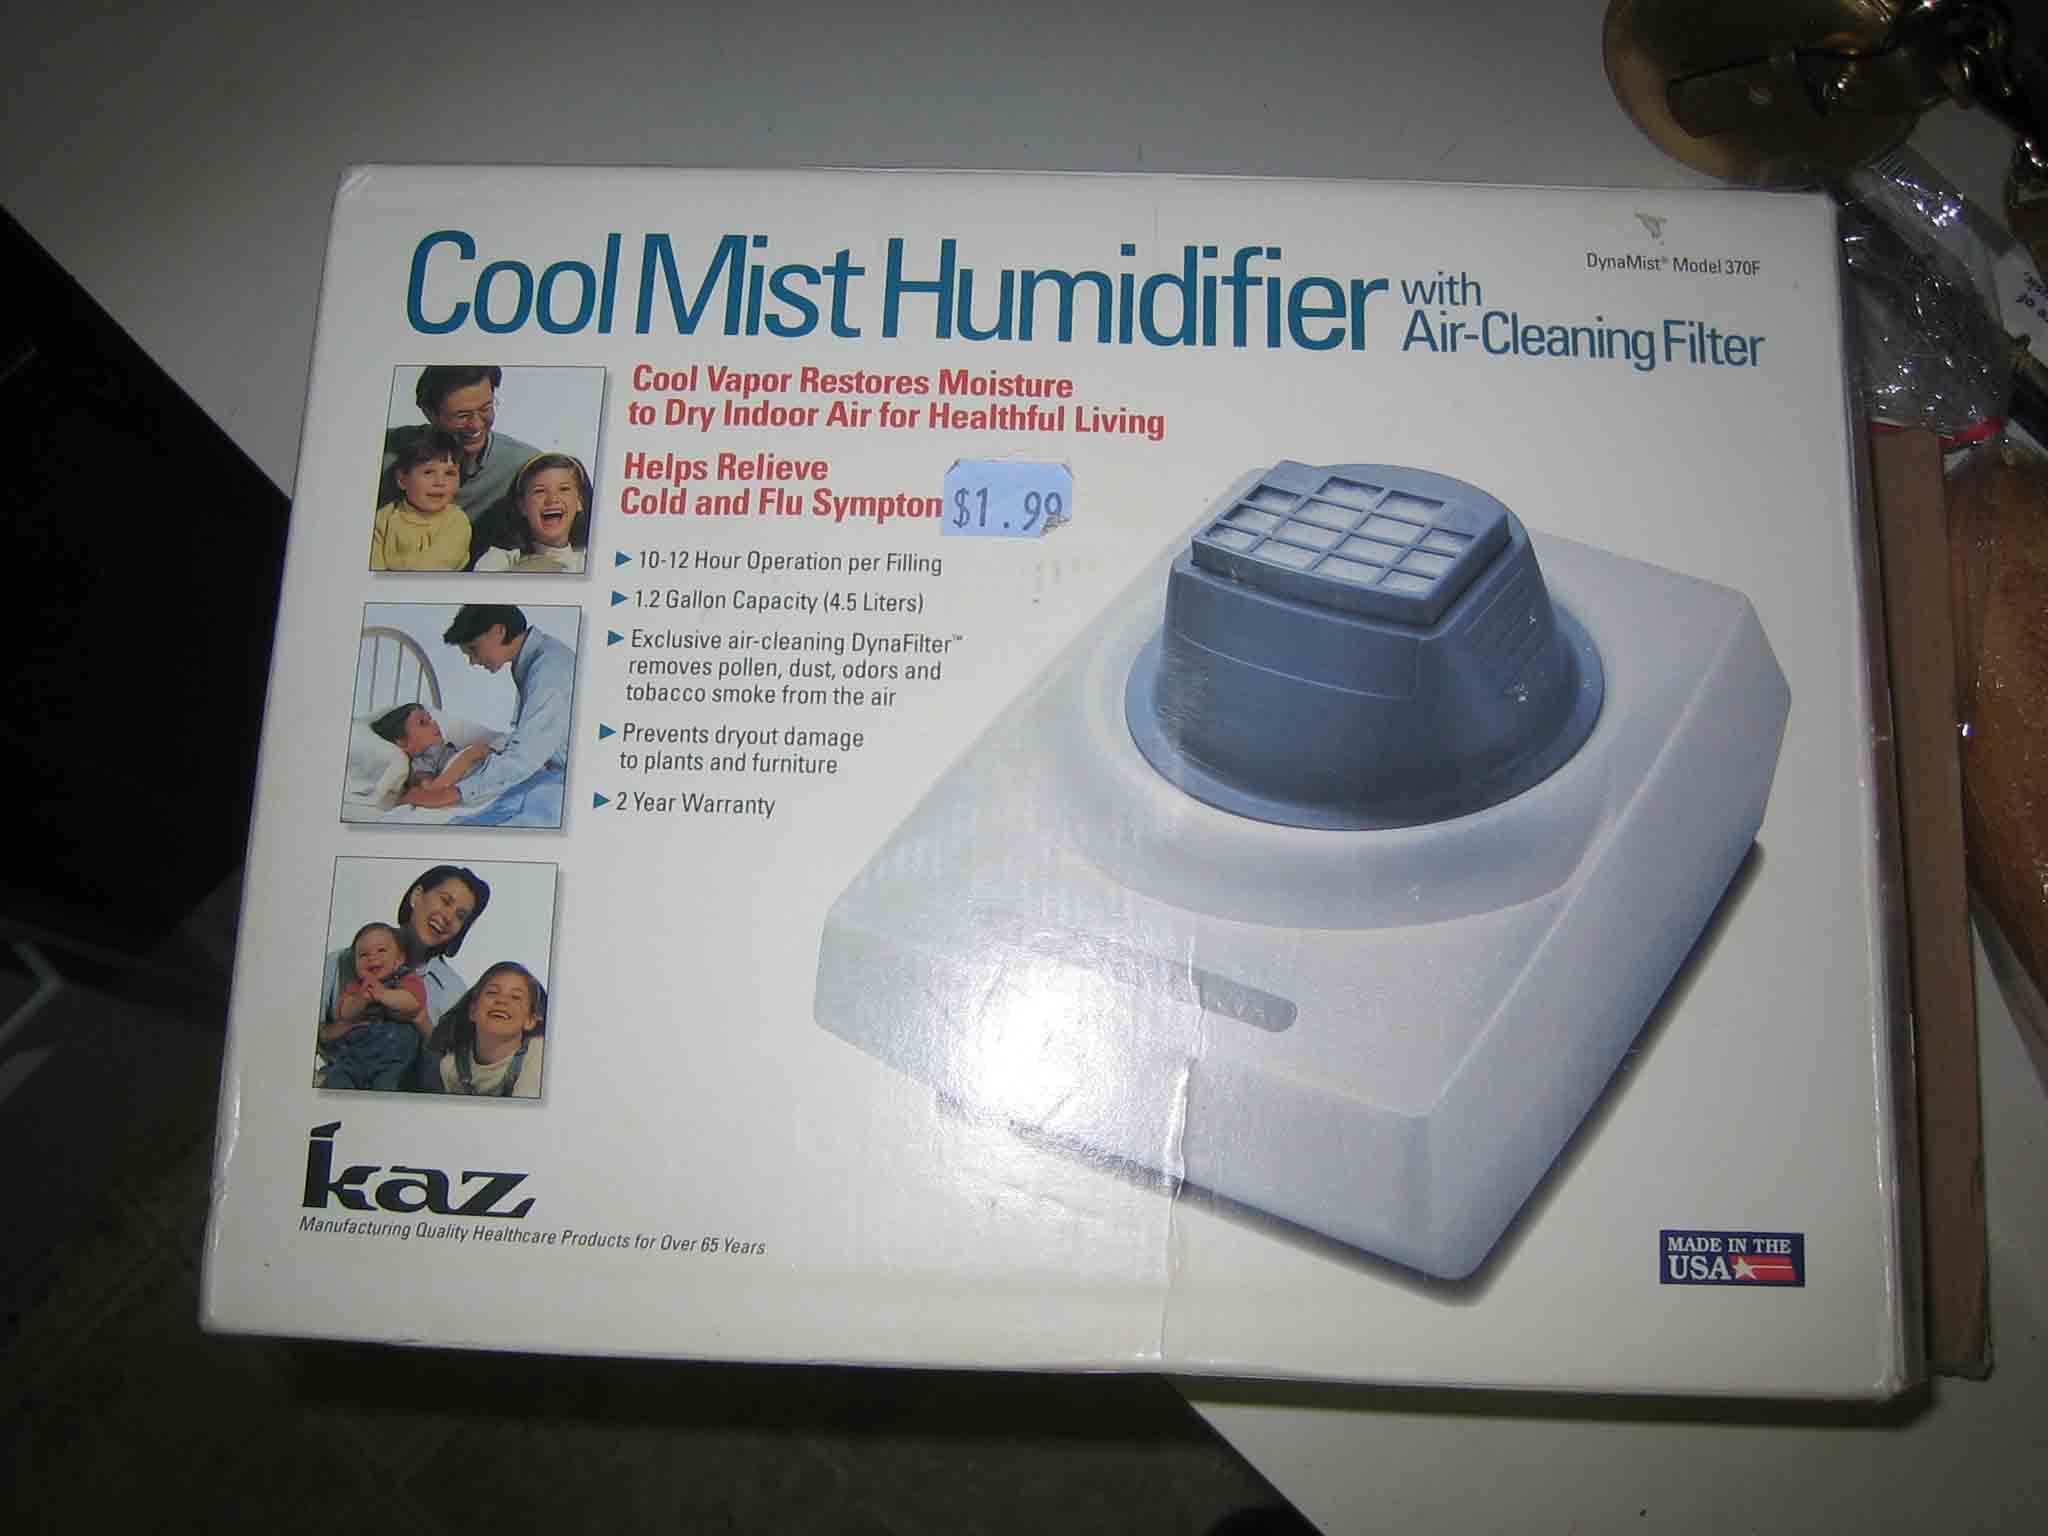 cool mist humidifier Updated W/ Pics Mushroom Cultivation  #364B61